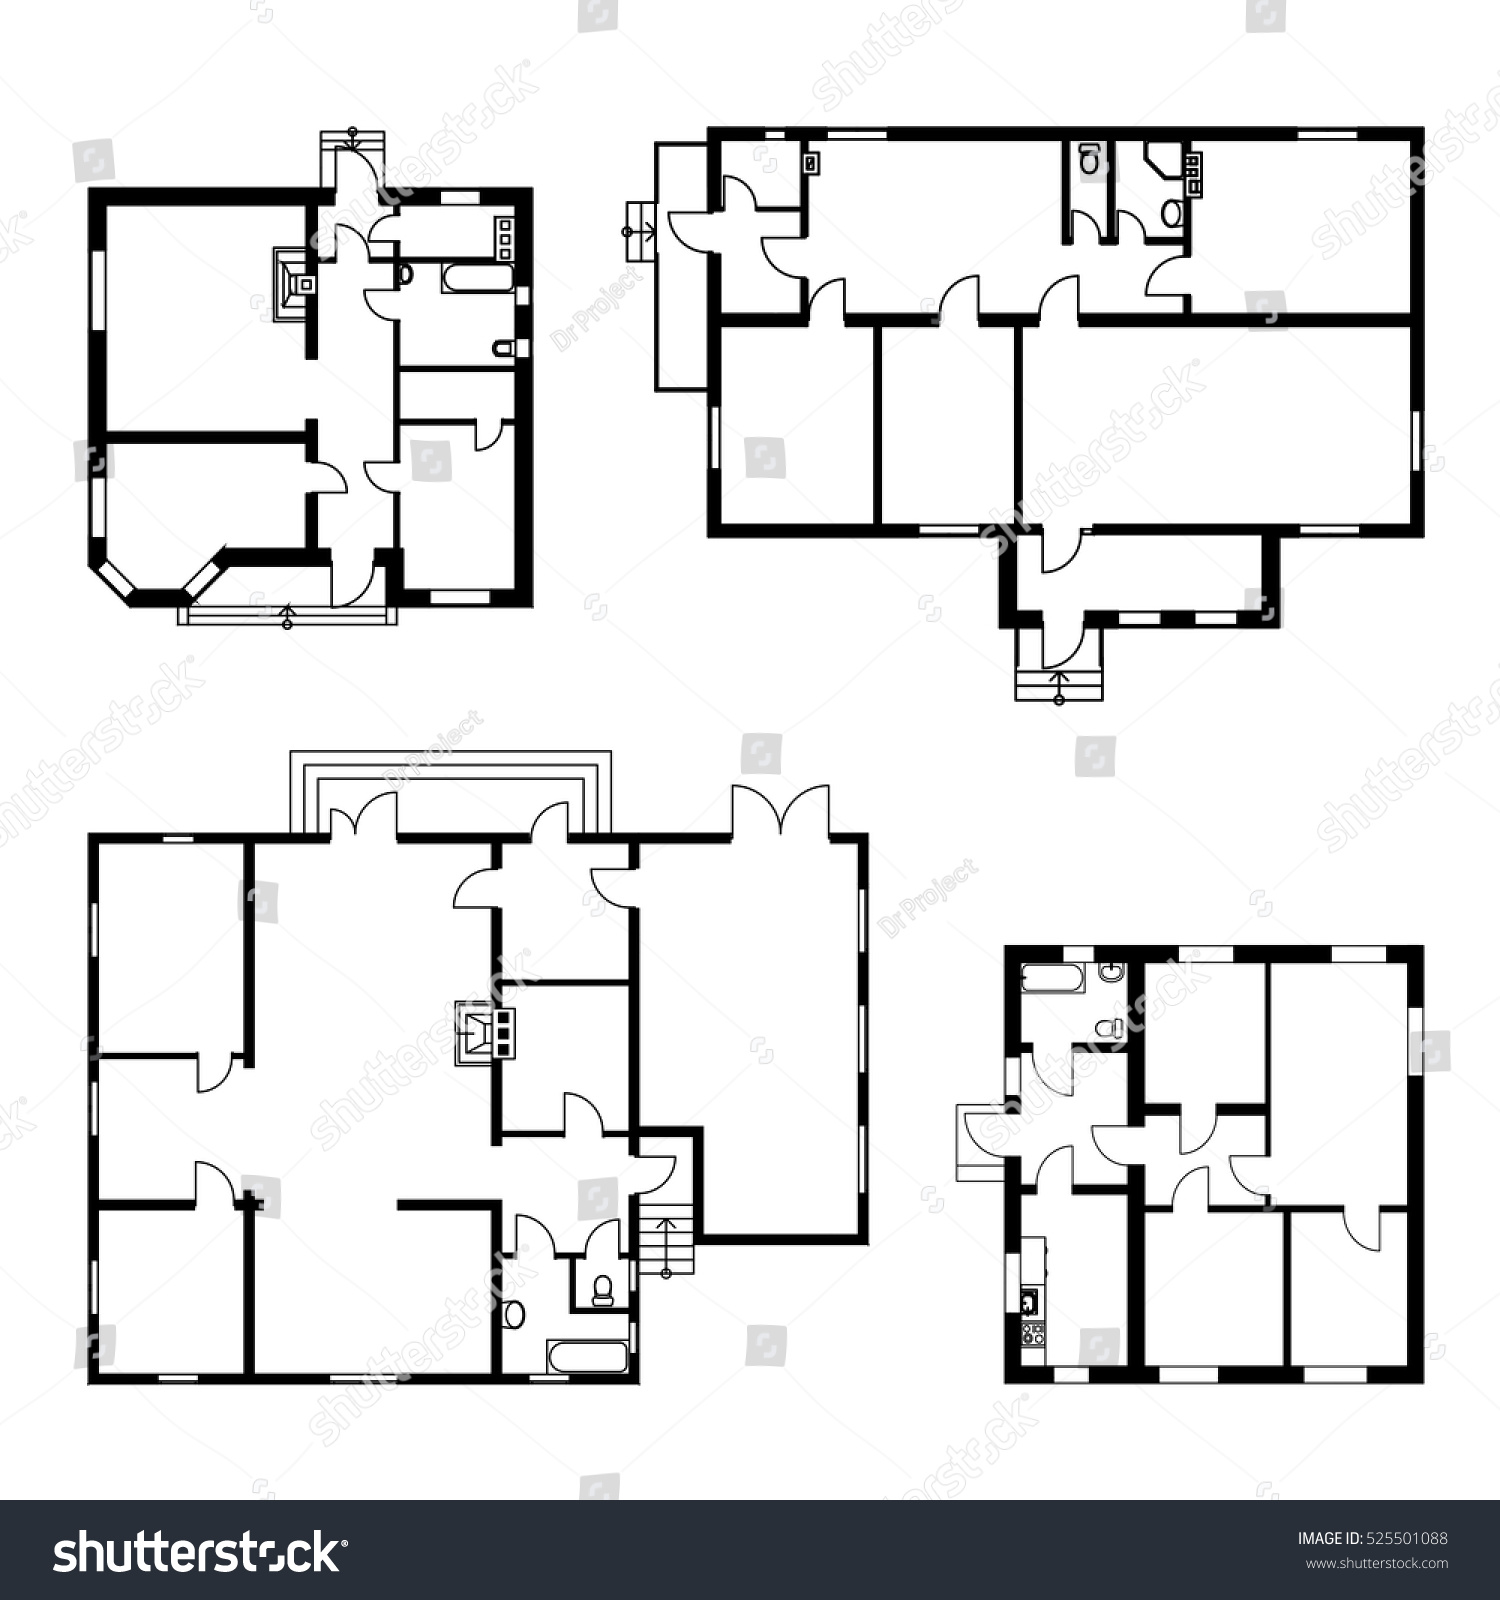 100 stock floor plans fiddlers creek marsh cove new stock development homes u2013 naples - Ground floor house plans the ideal choice ...